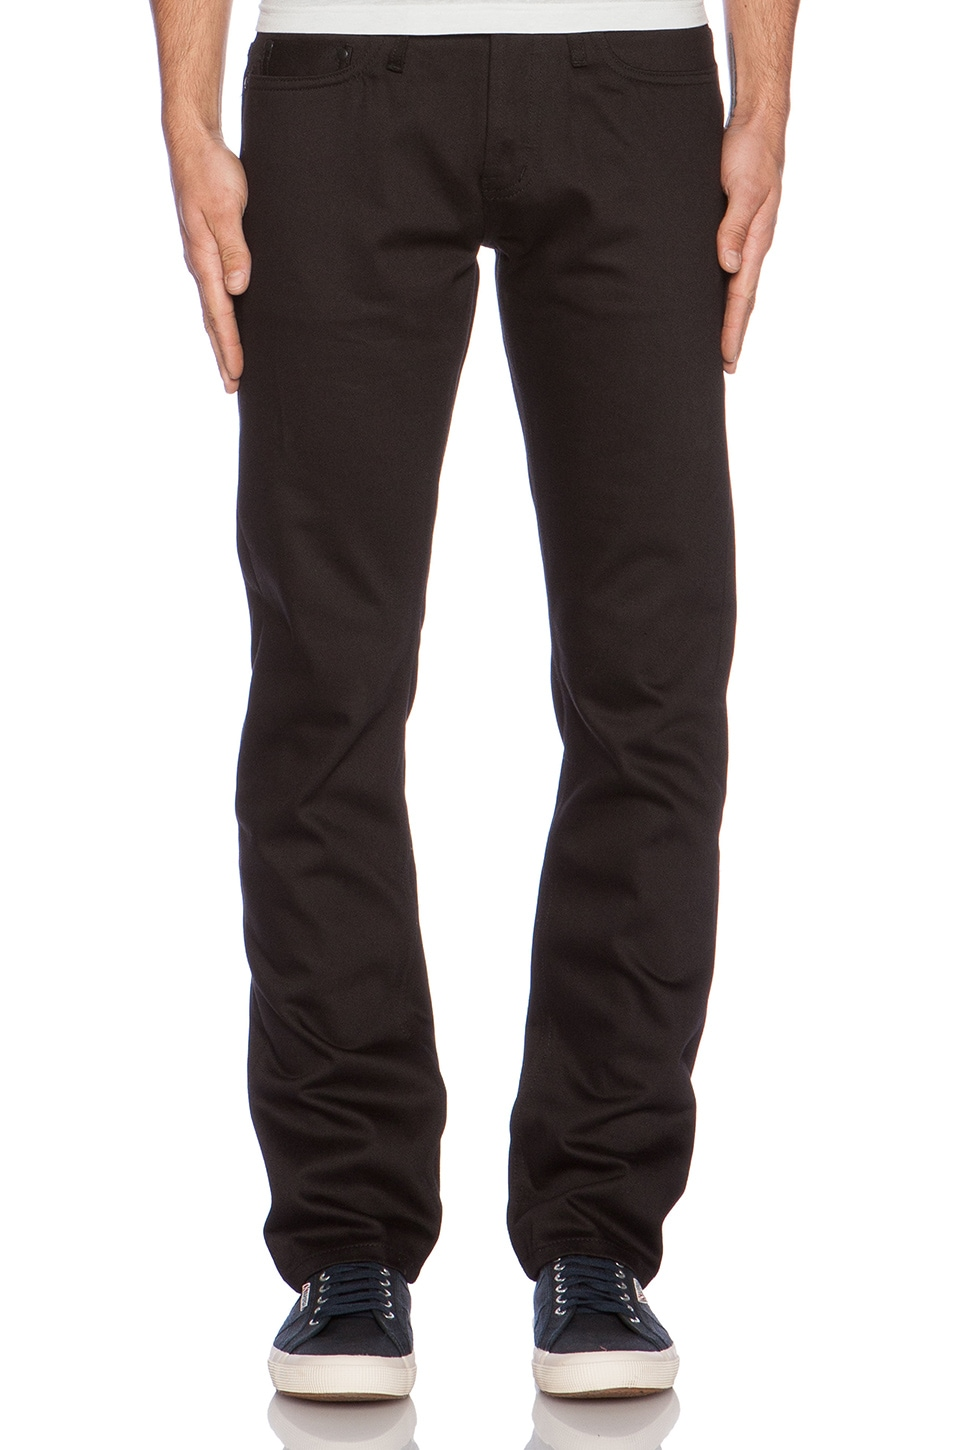 Unbranded Tapered 14.5 oz. Selvedge Chino in Black